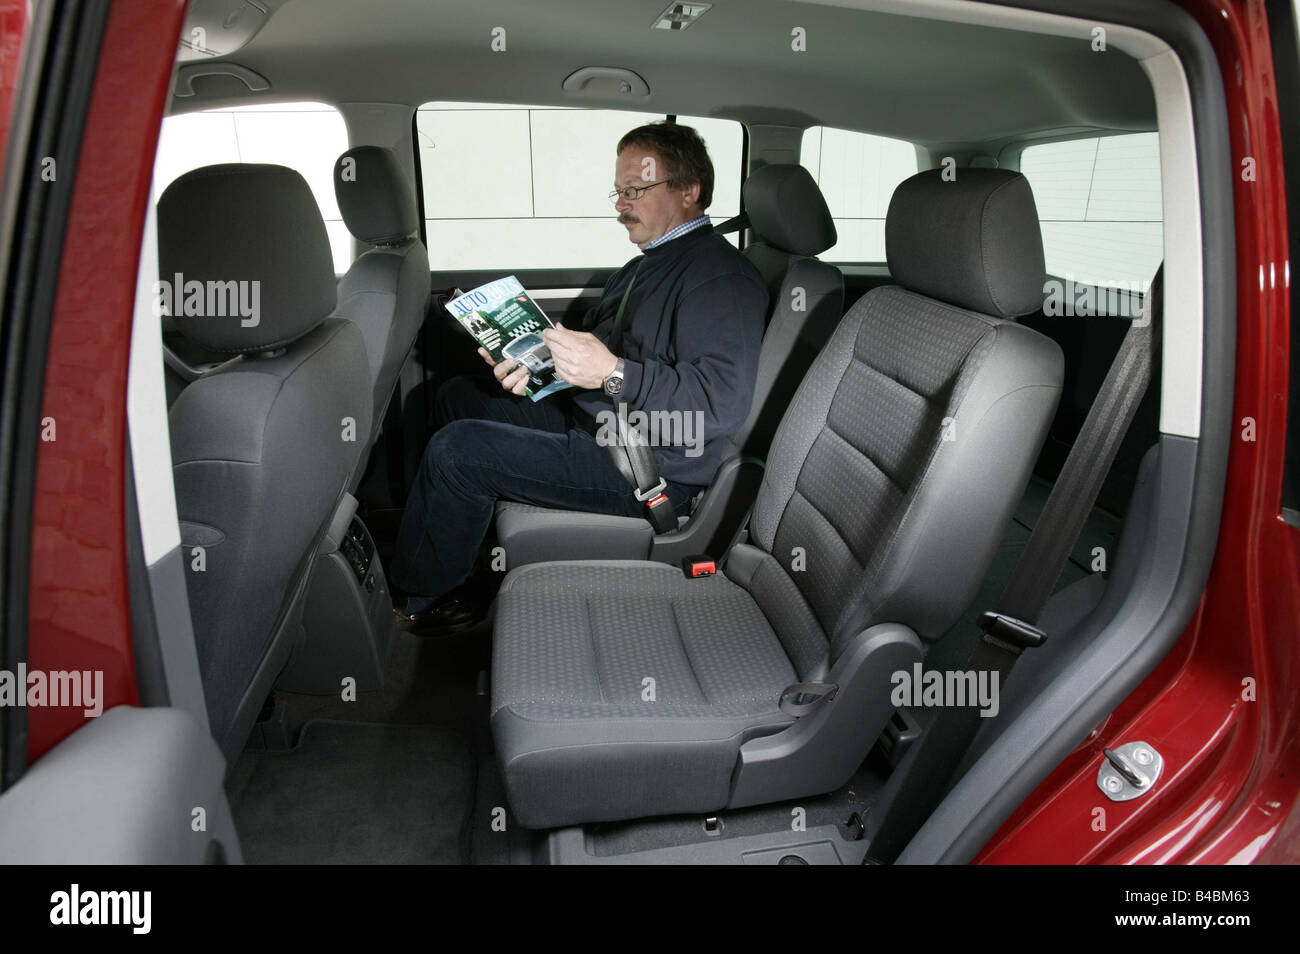 car vw volkswagen touran van model year 2003 red interior view stock photo 19926315 alamy. Black Bedroom Furniture Sets. Home Design Ideas